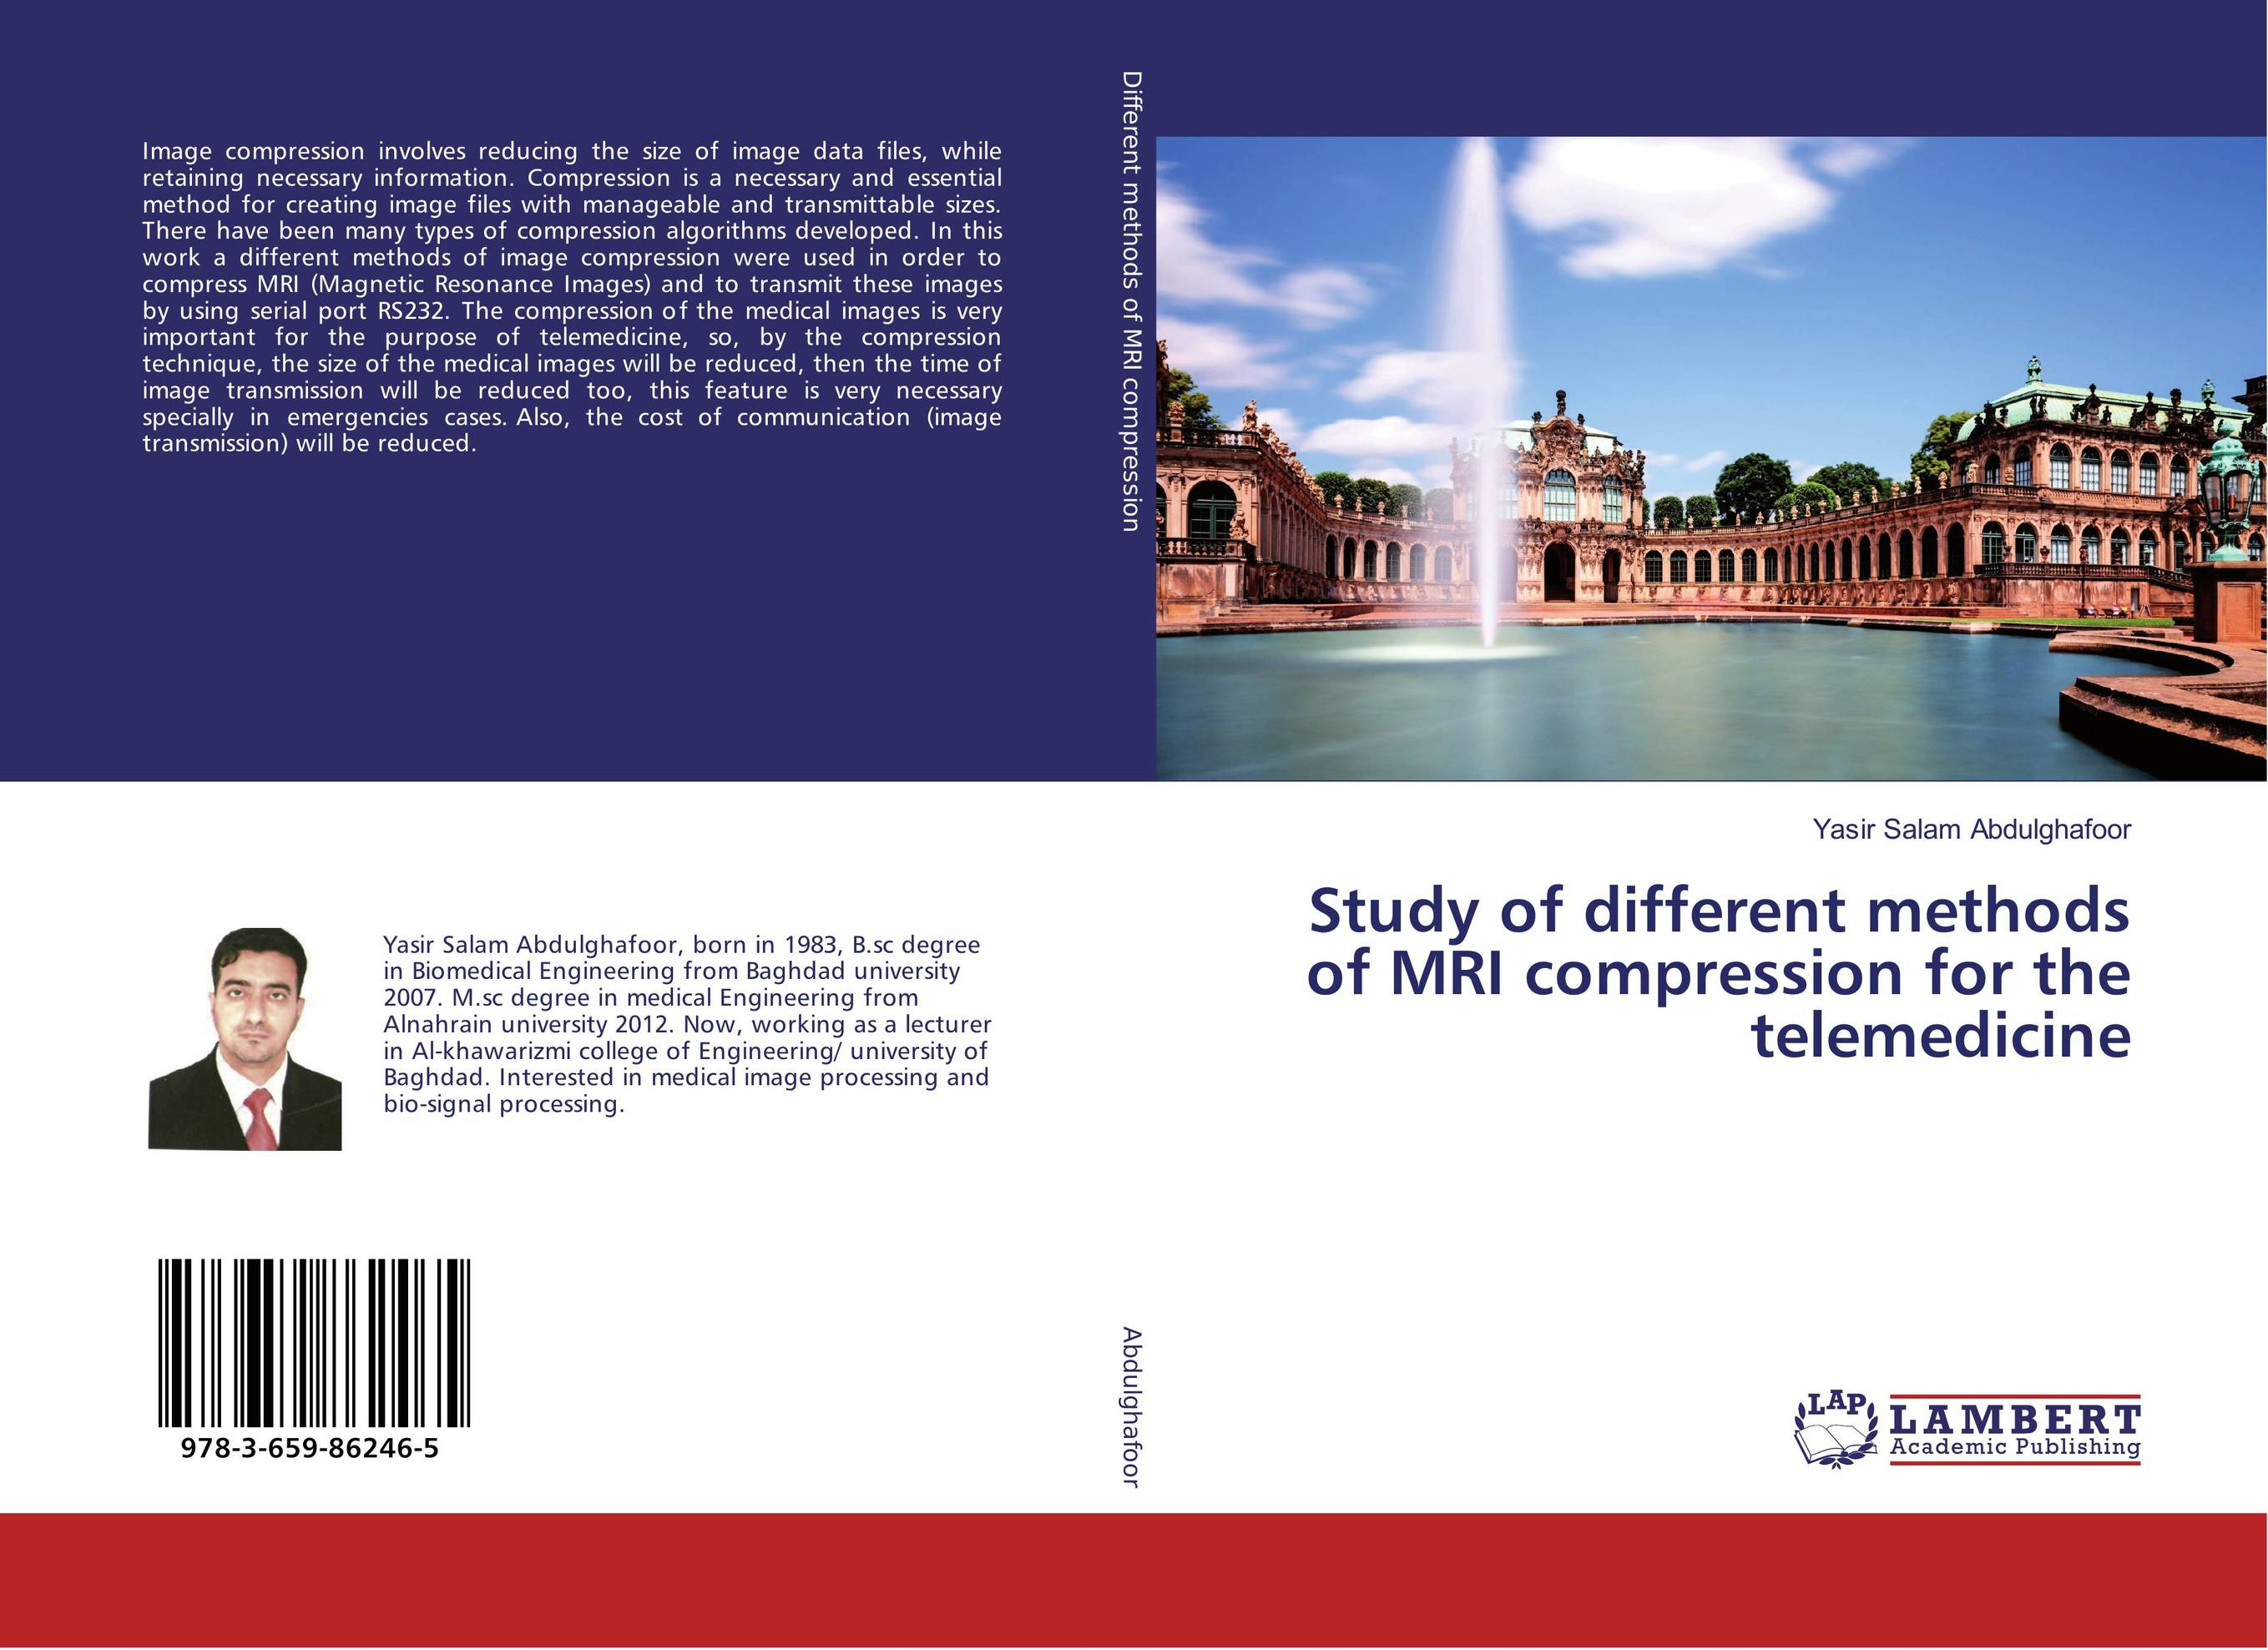 Study of different methods of MRI compression for the telemedicine